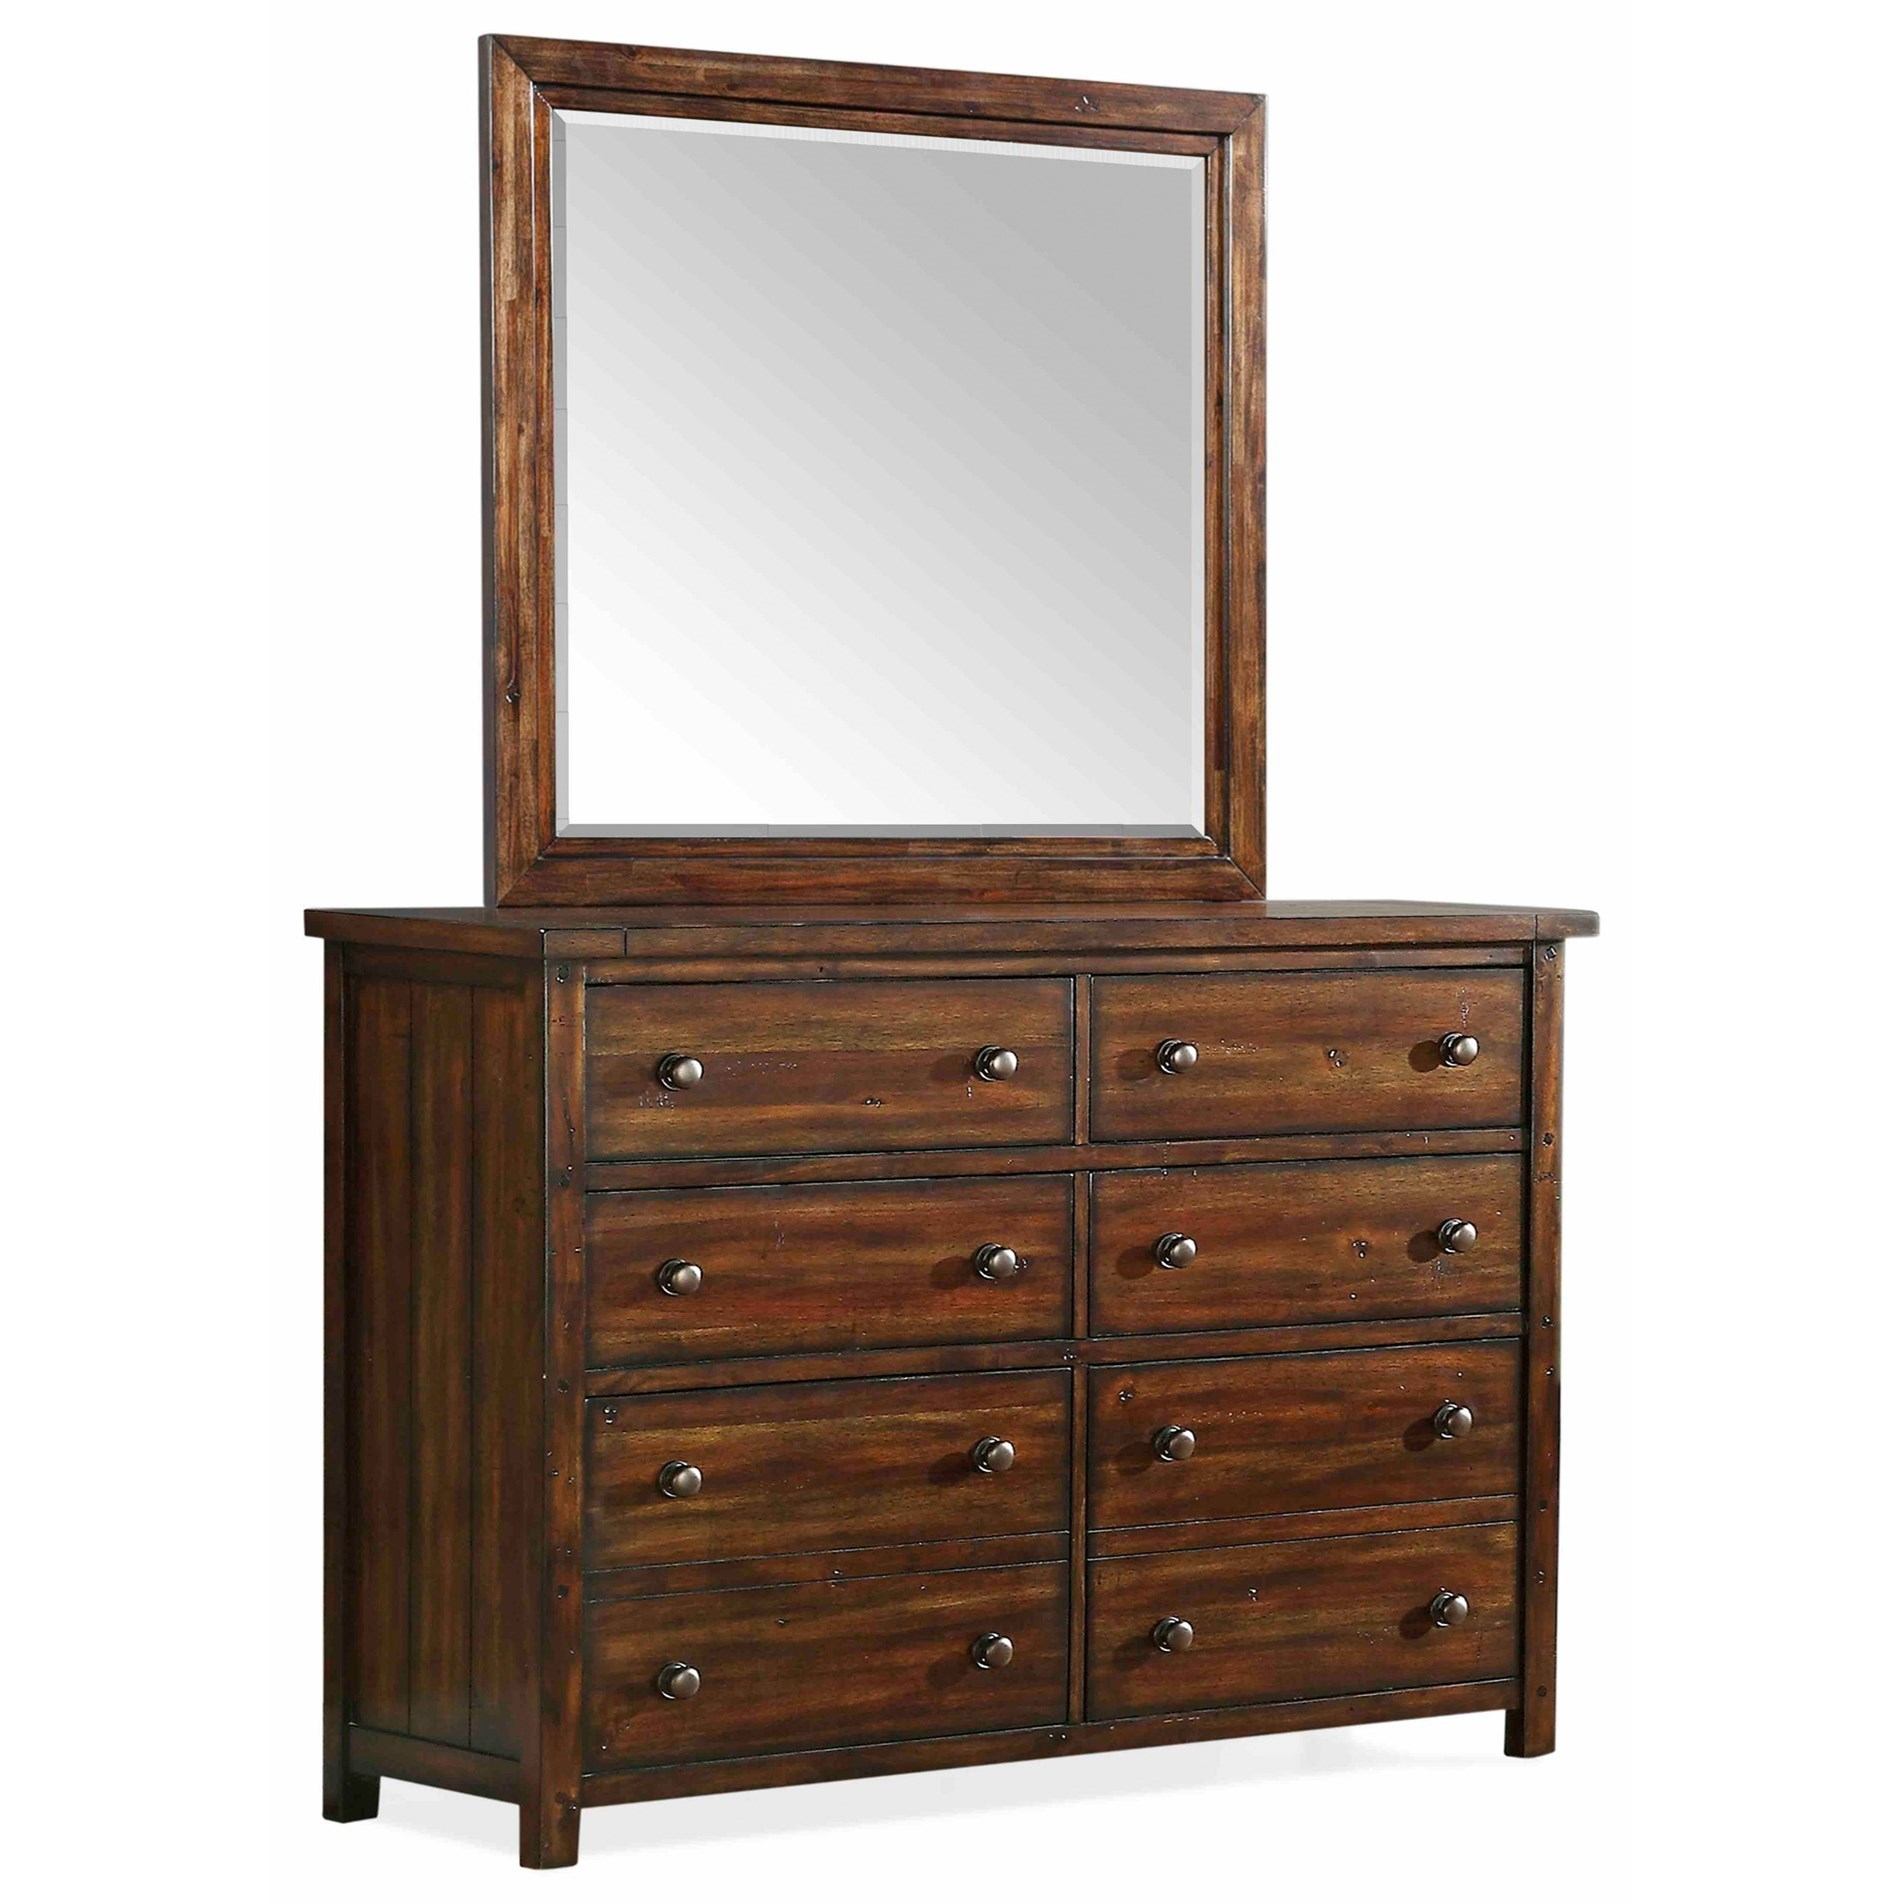 Dawson Creek Dresser and Mirror Set by Elements International at Wilcox Furniture